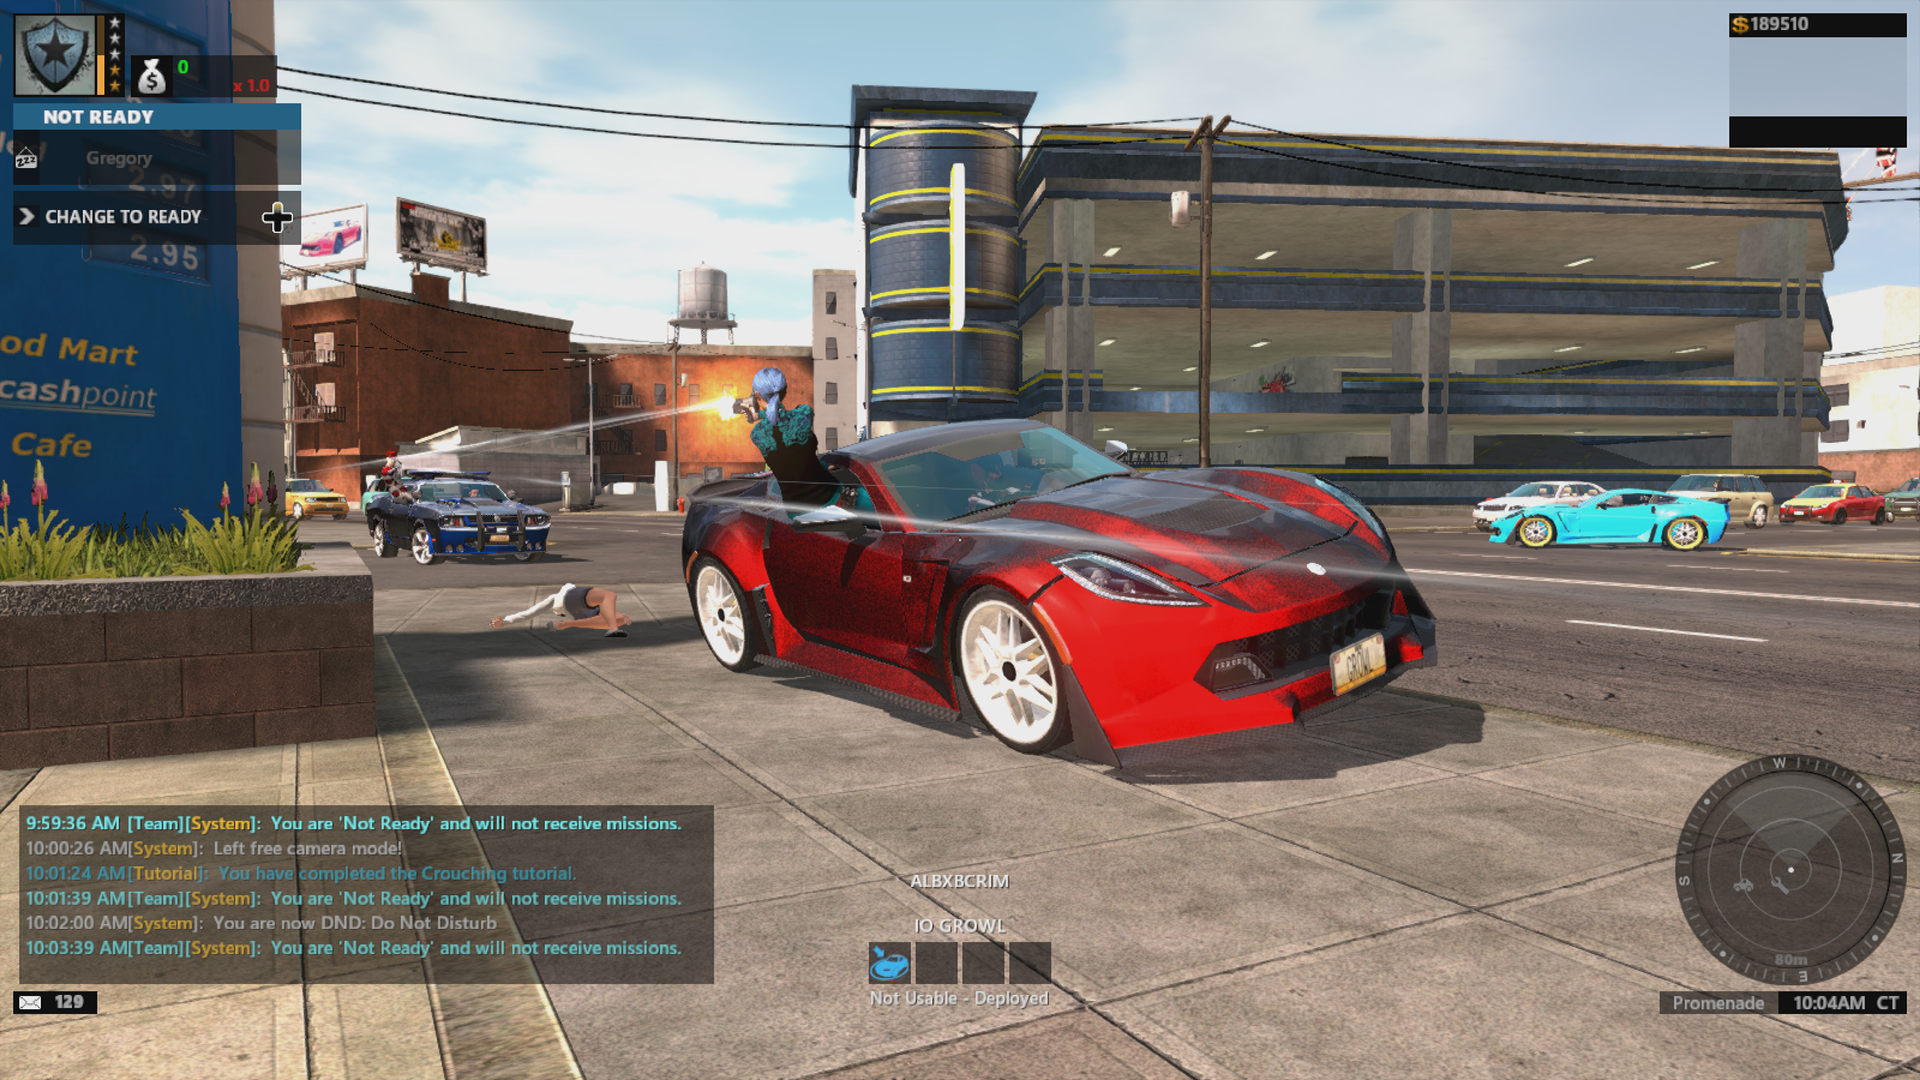 F2P Open World MMO APB Reloaded Sneaks Onto Xbox One